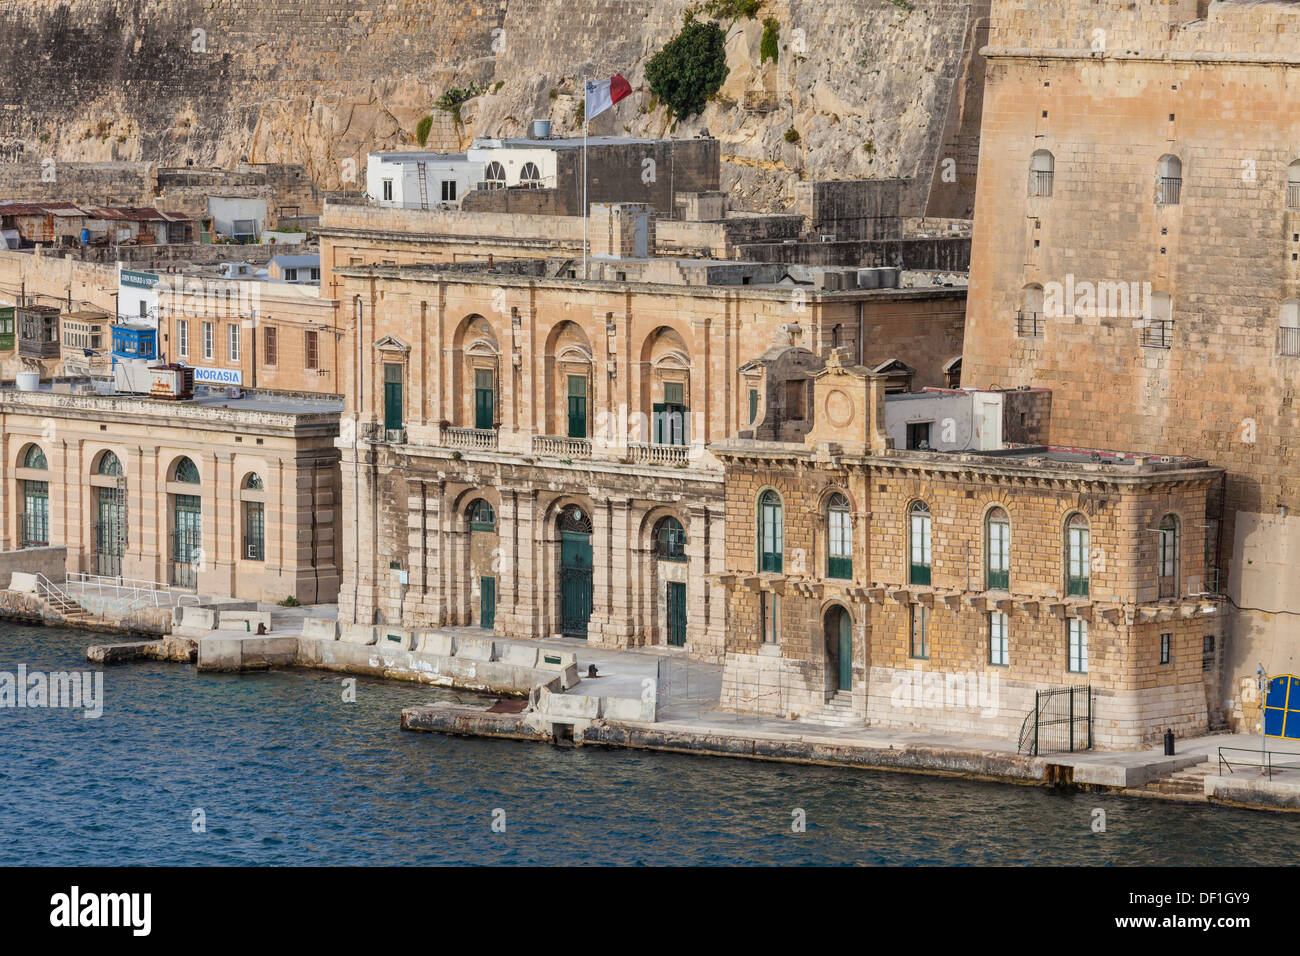 Water front view from the harbor in Valletta, the Capital City of Malta. - Stock Image